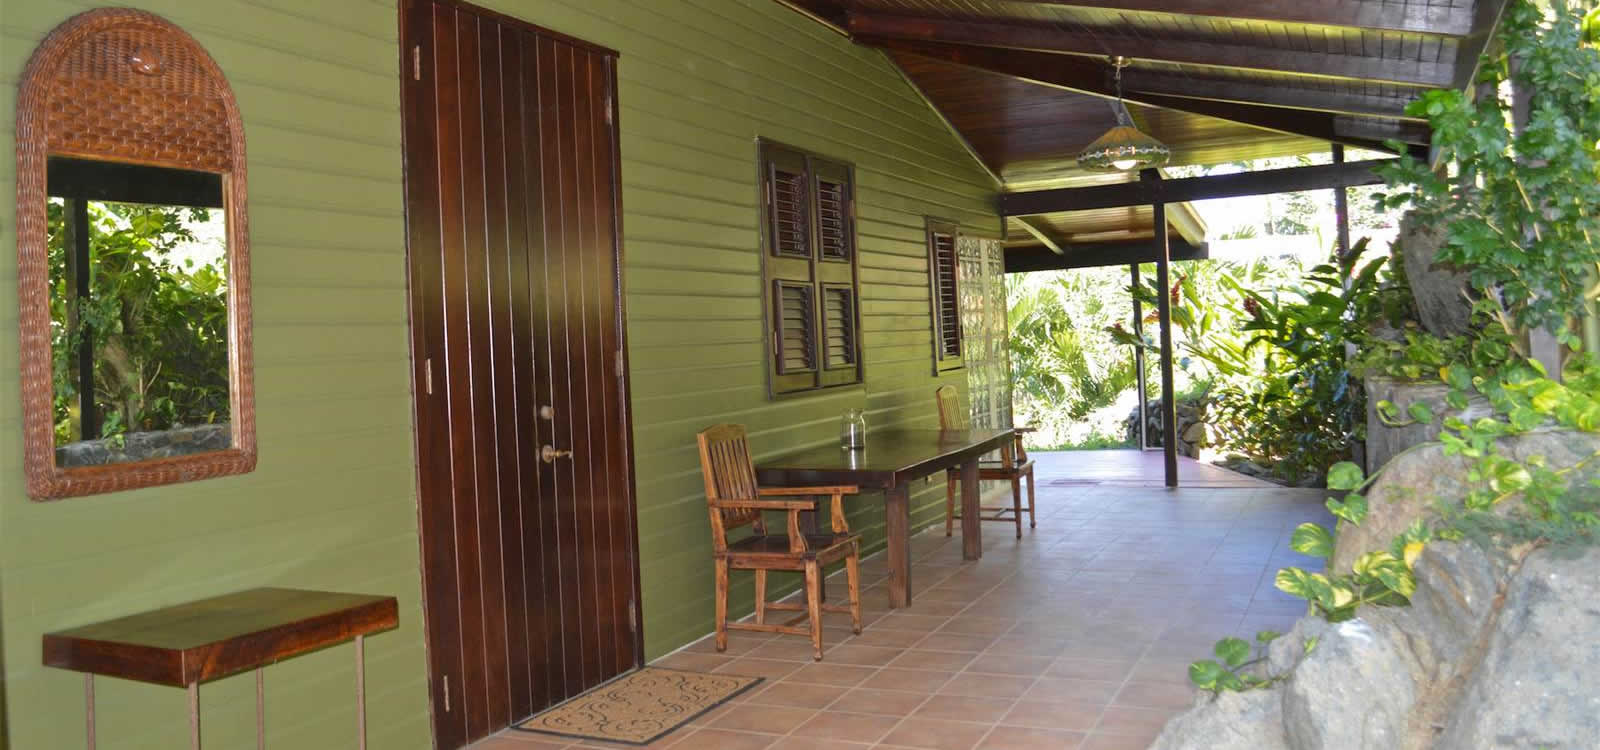 Cane Island Apartments For Sale